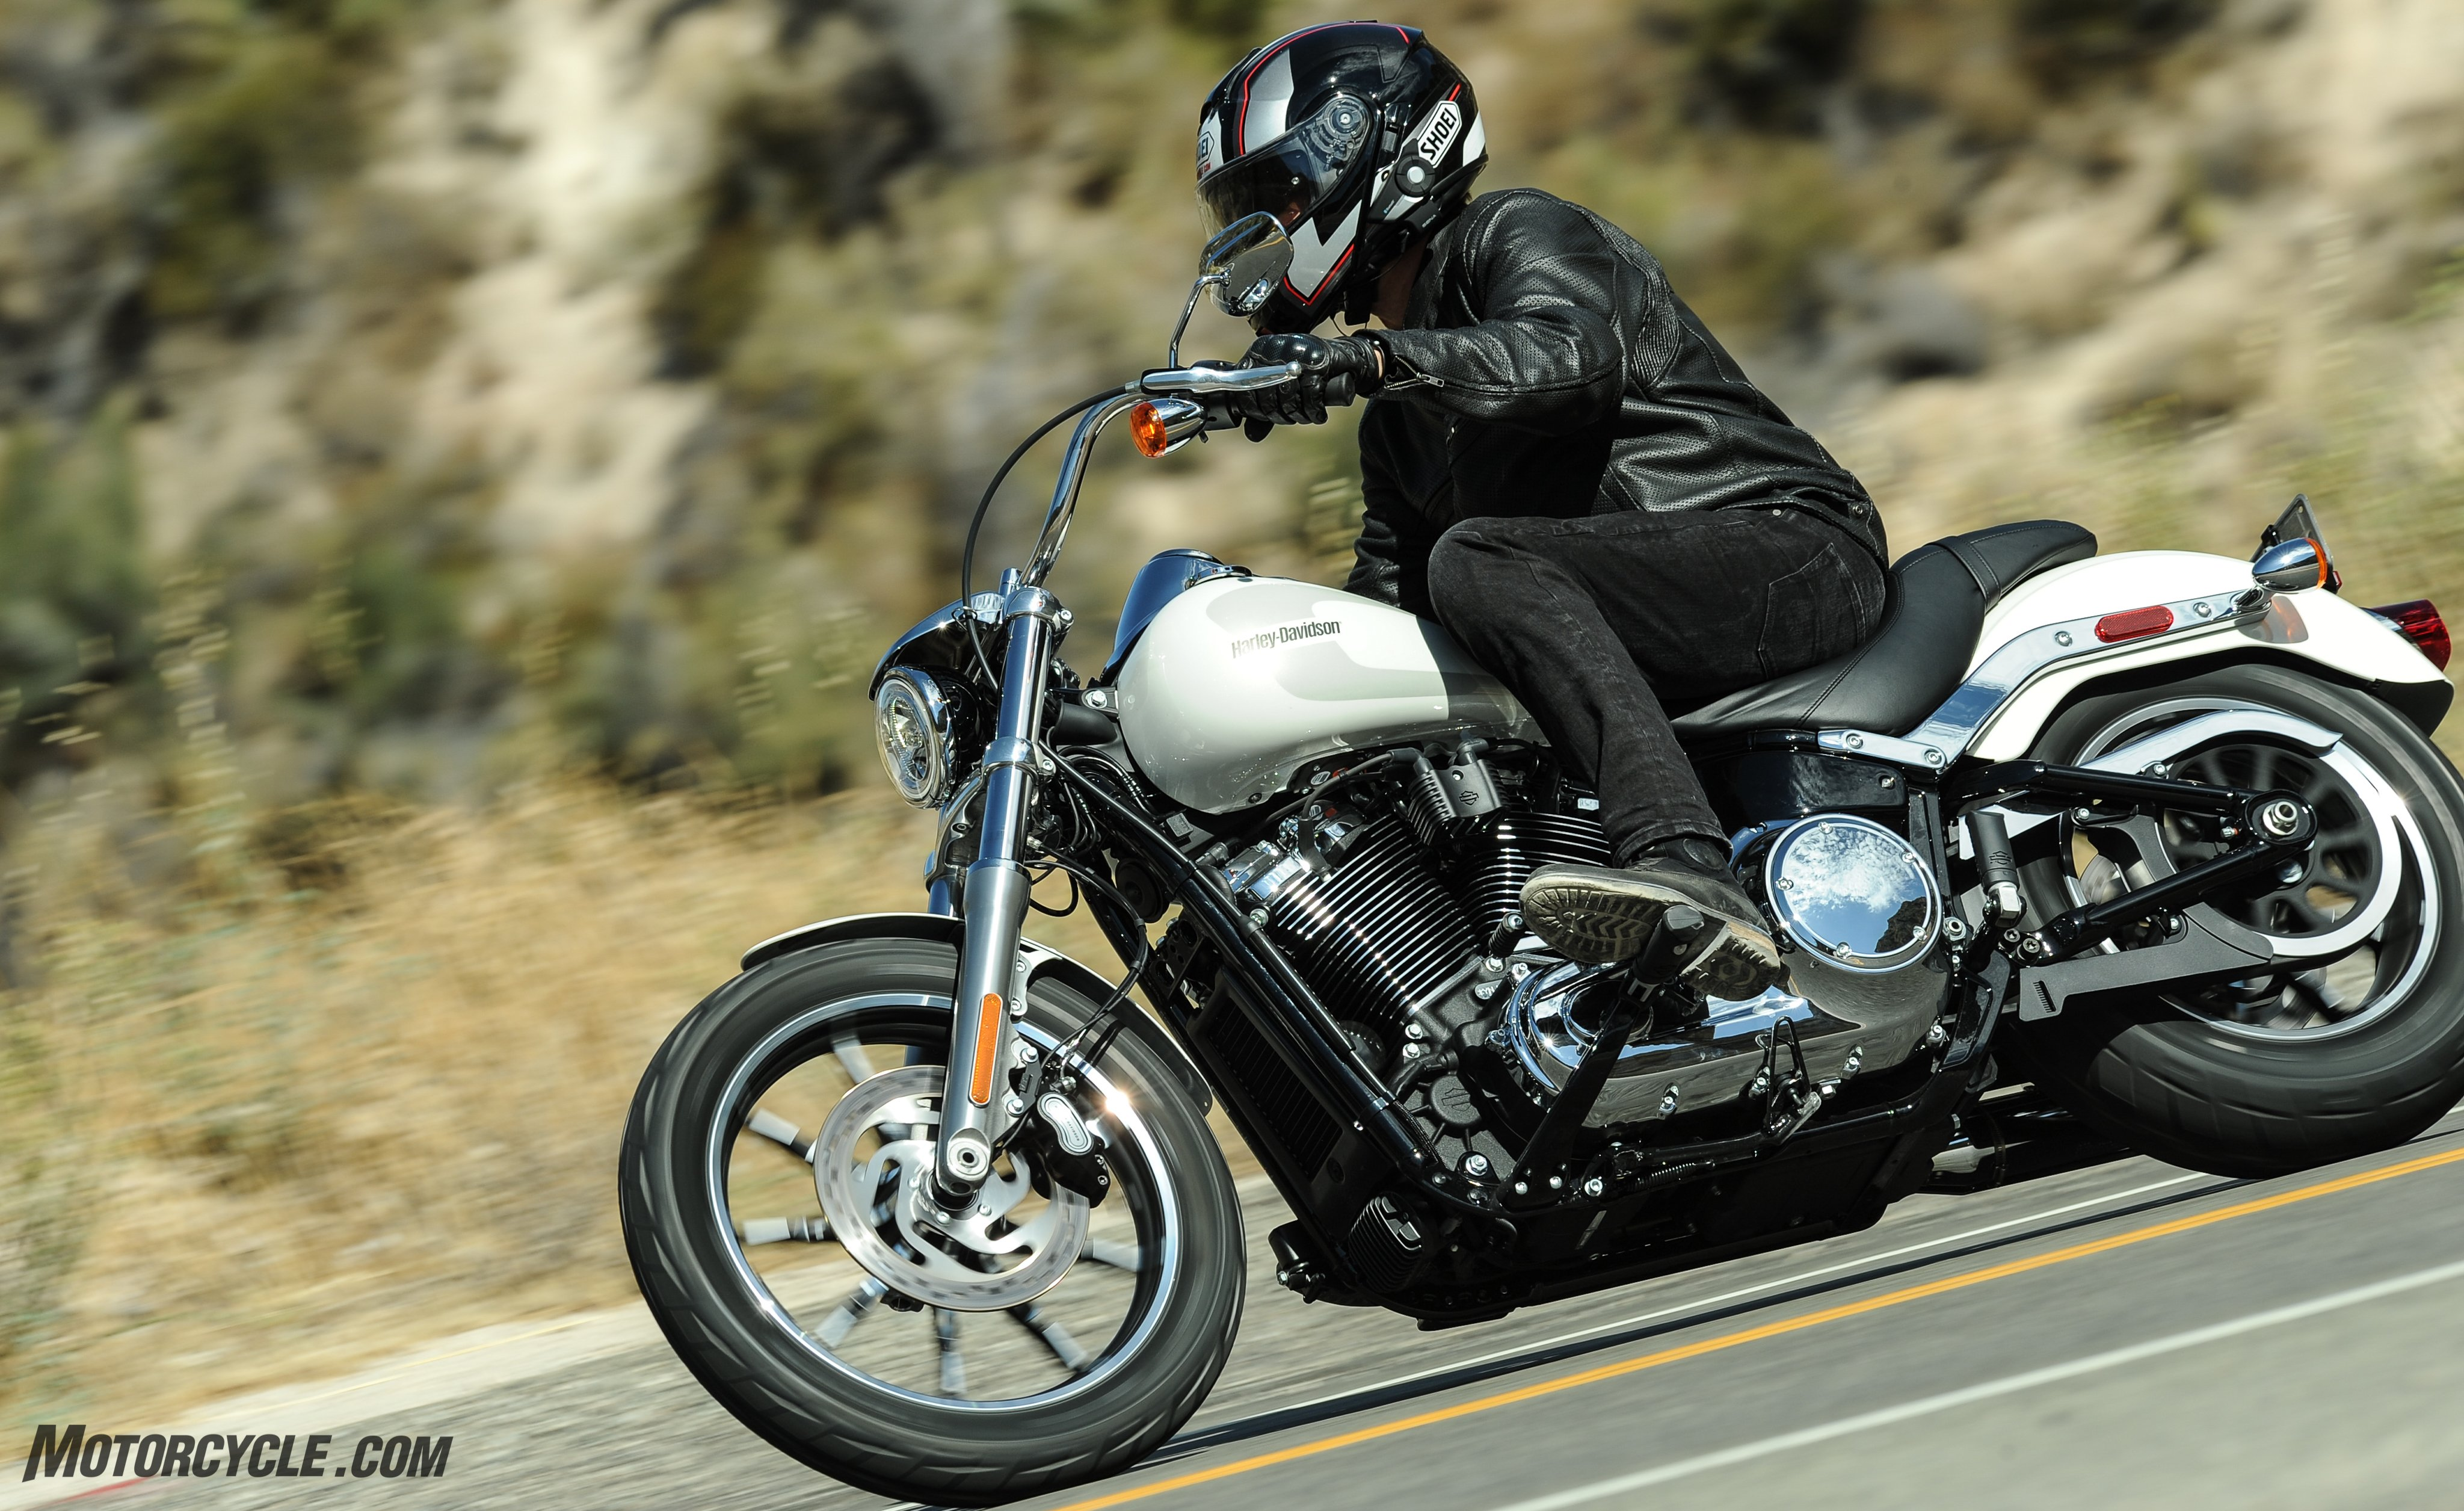 2018 Harley-Davidson Low Rider Review – First Ride